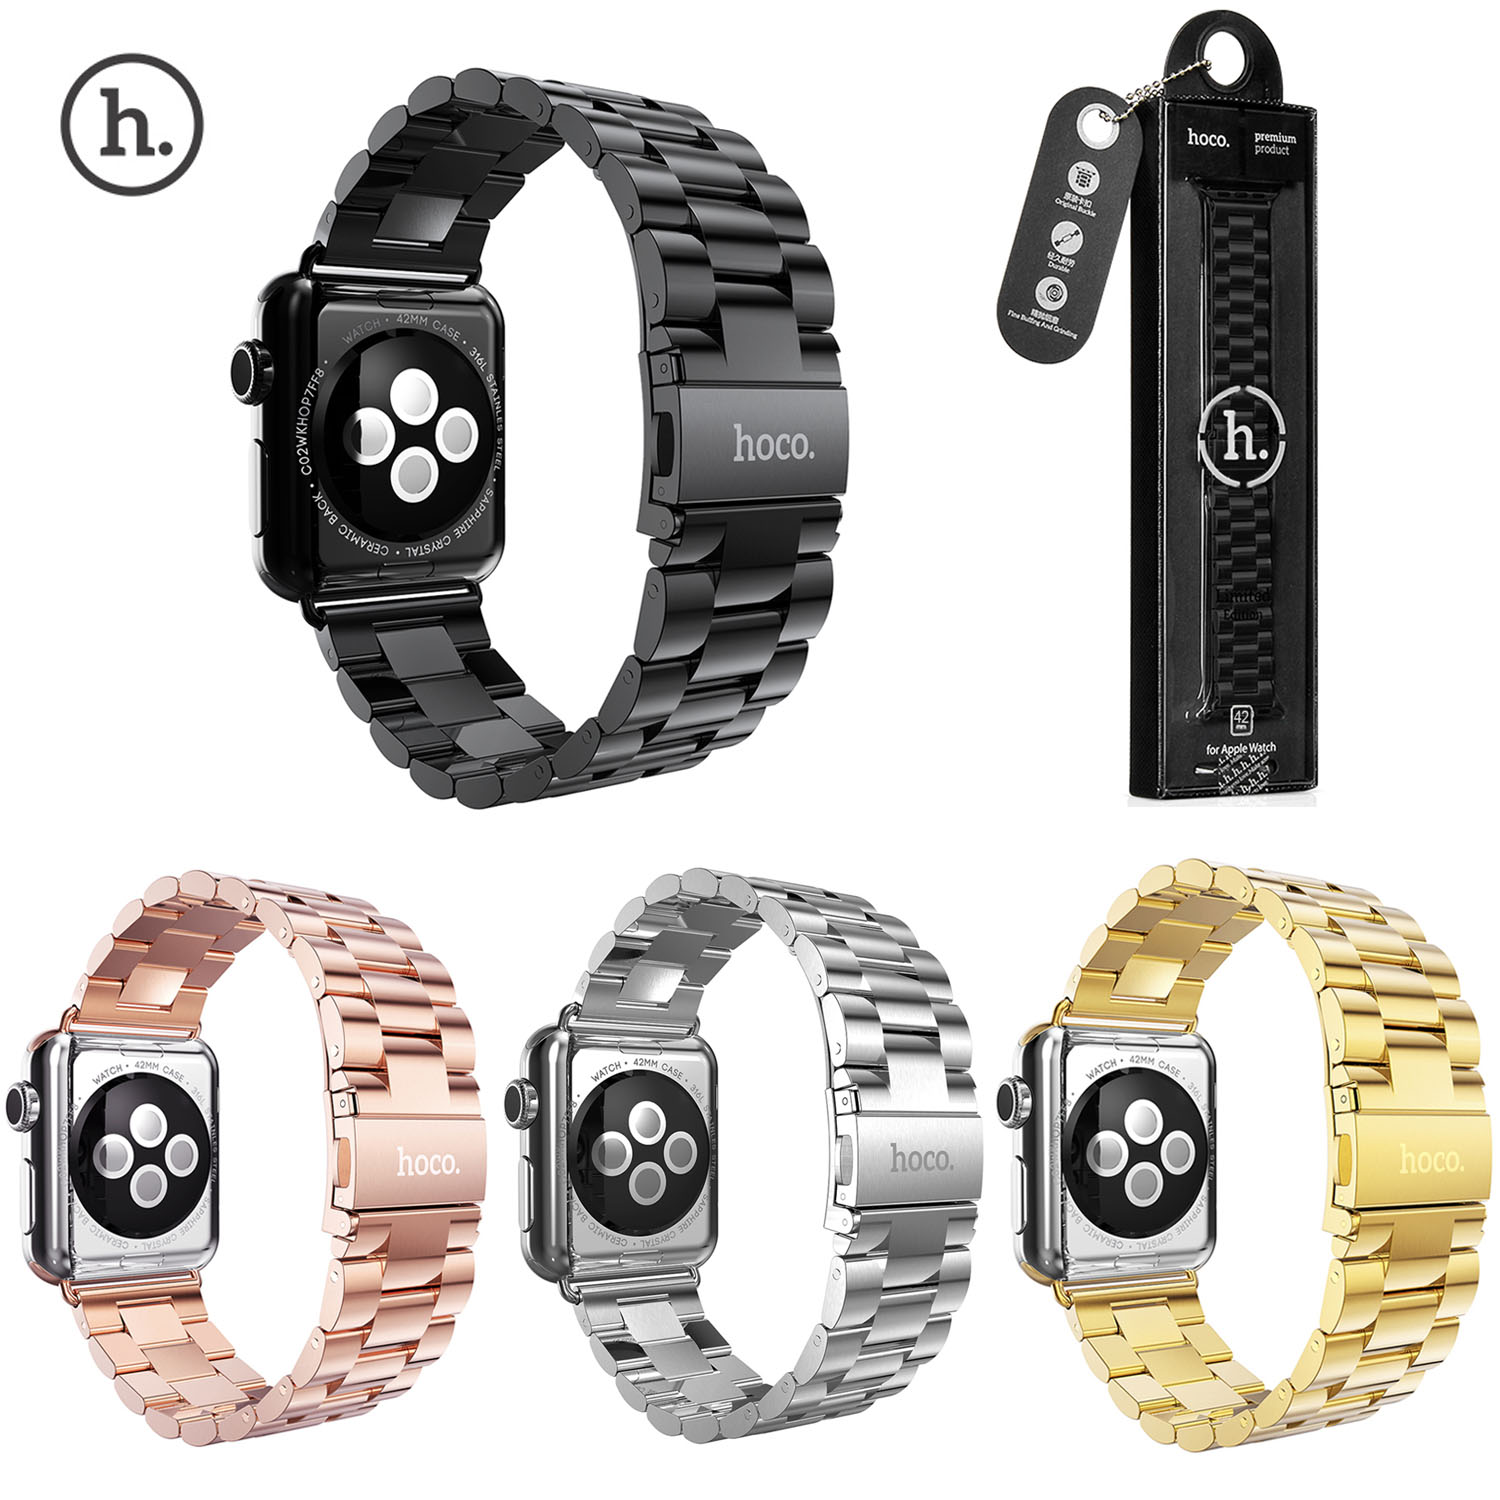 HOCO Classic 316L Stainless Steel Strap for Apple Watch Series 3 Band Bracelet for iWatch Series 3/2/1 42mm 38mm Wristband кольцо opk 316l aaa 3 gj447